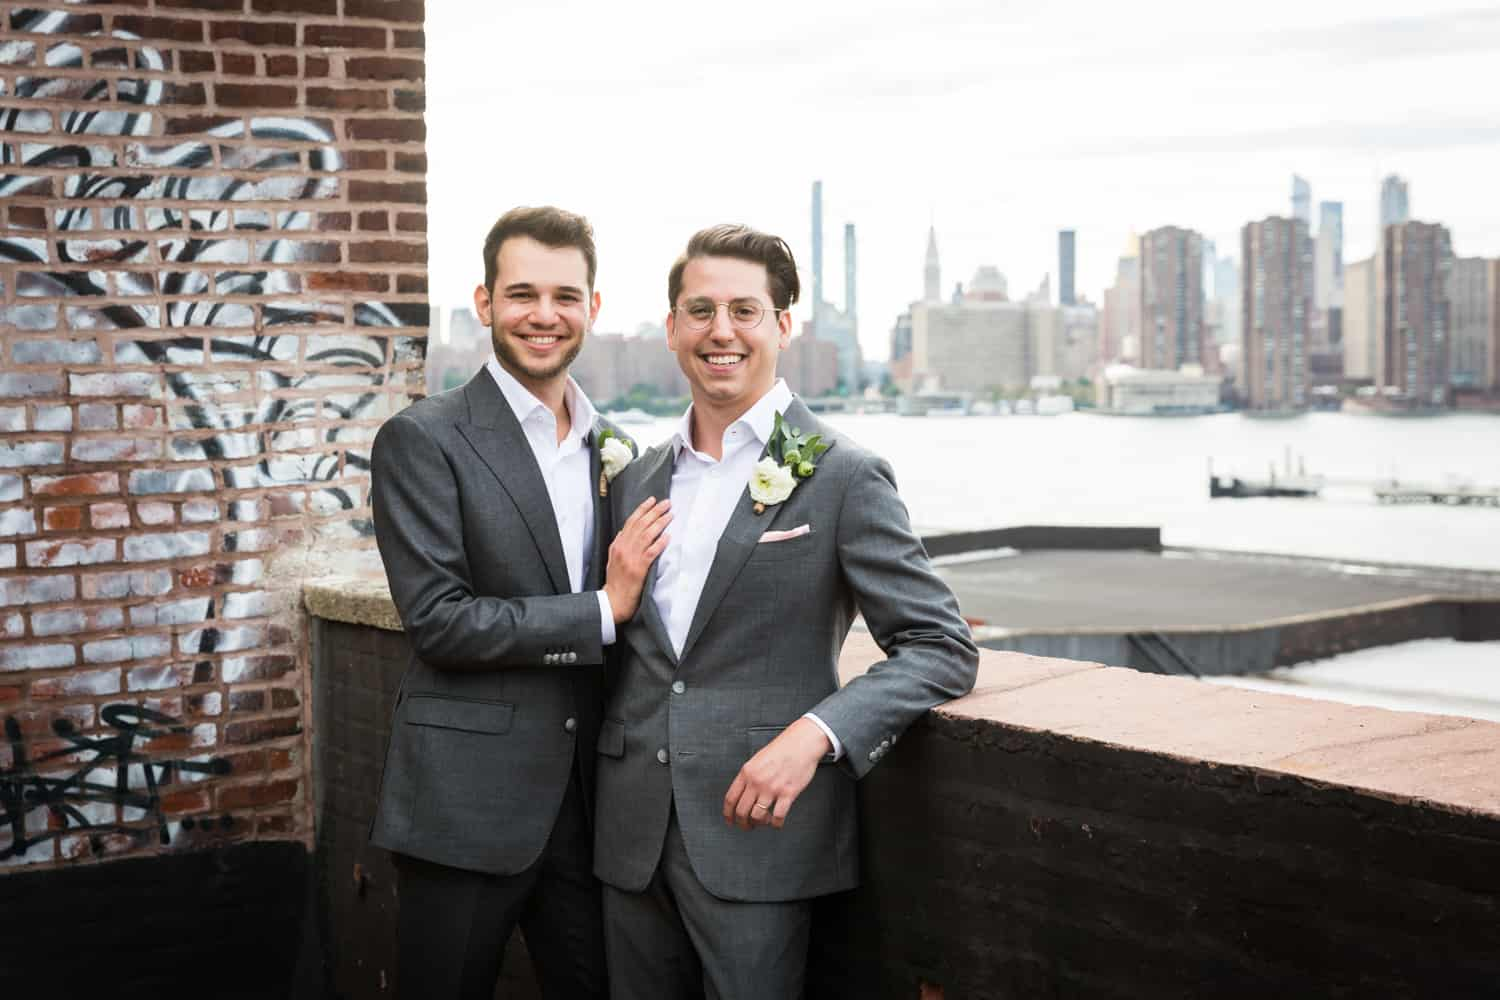 Greenpoint Loft wedding photos of two grooms on the roof with NYC skyline in background